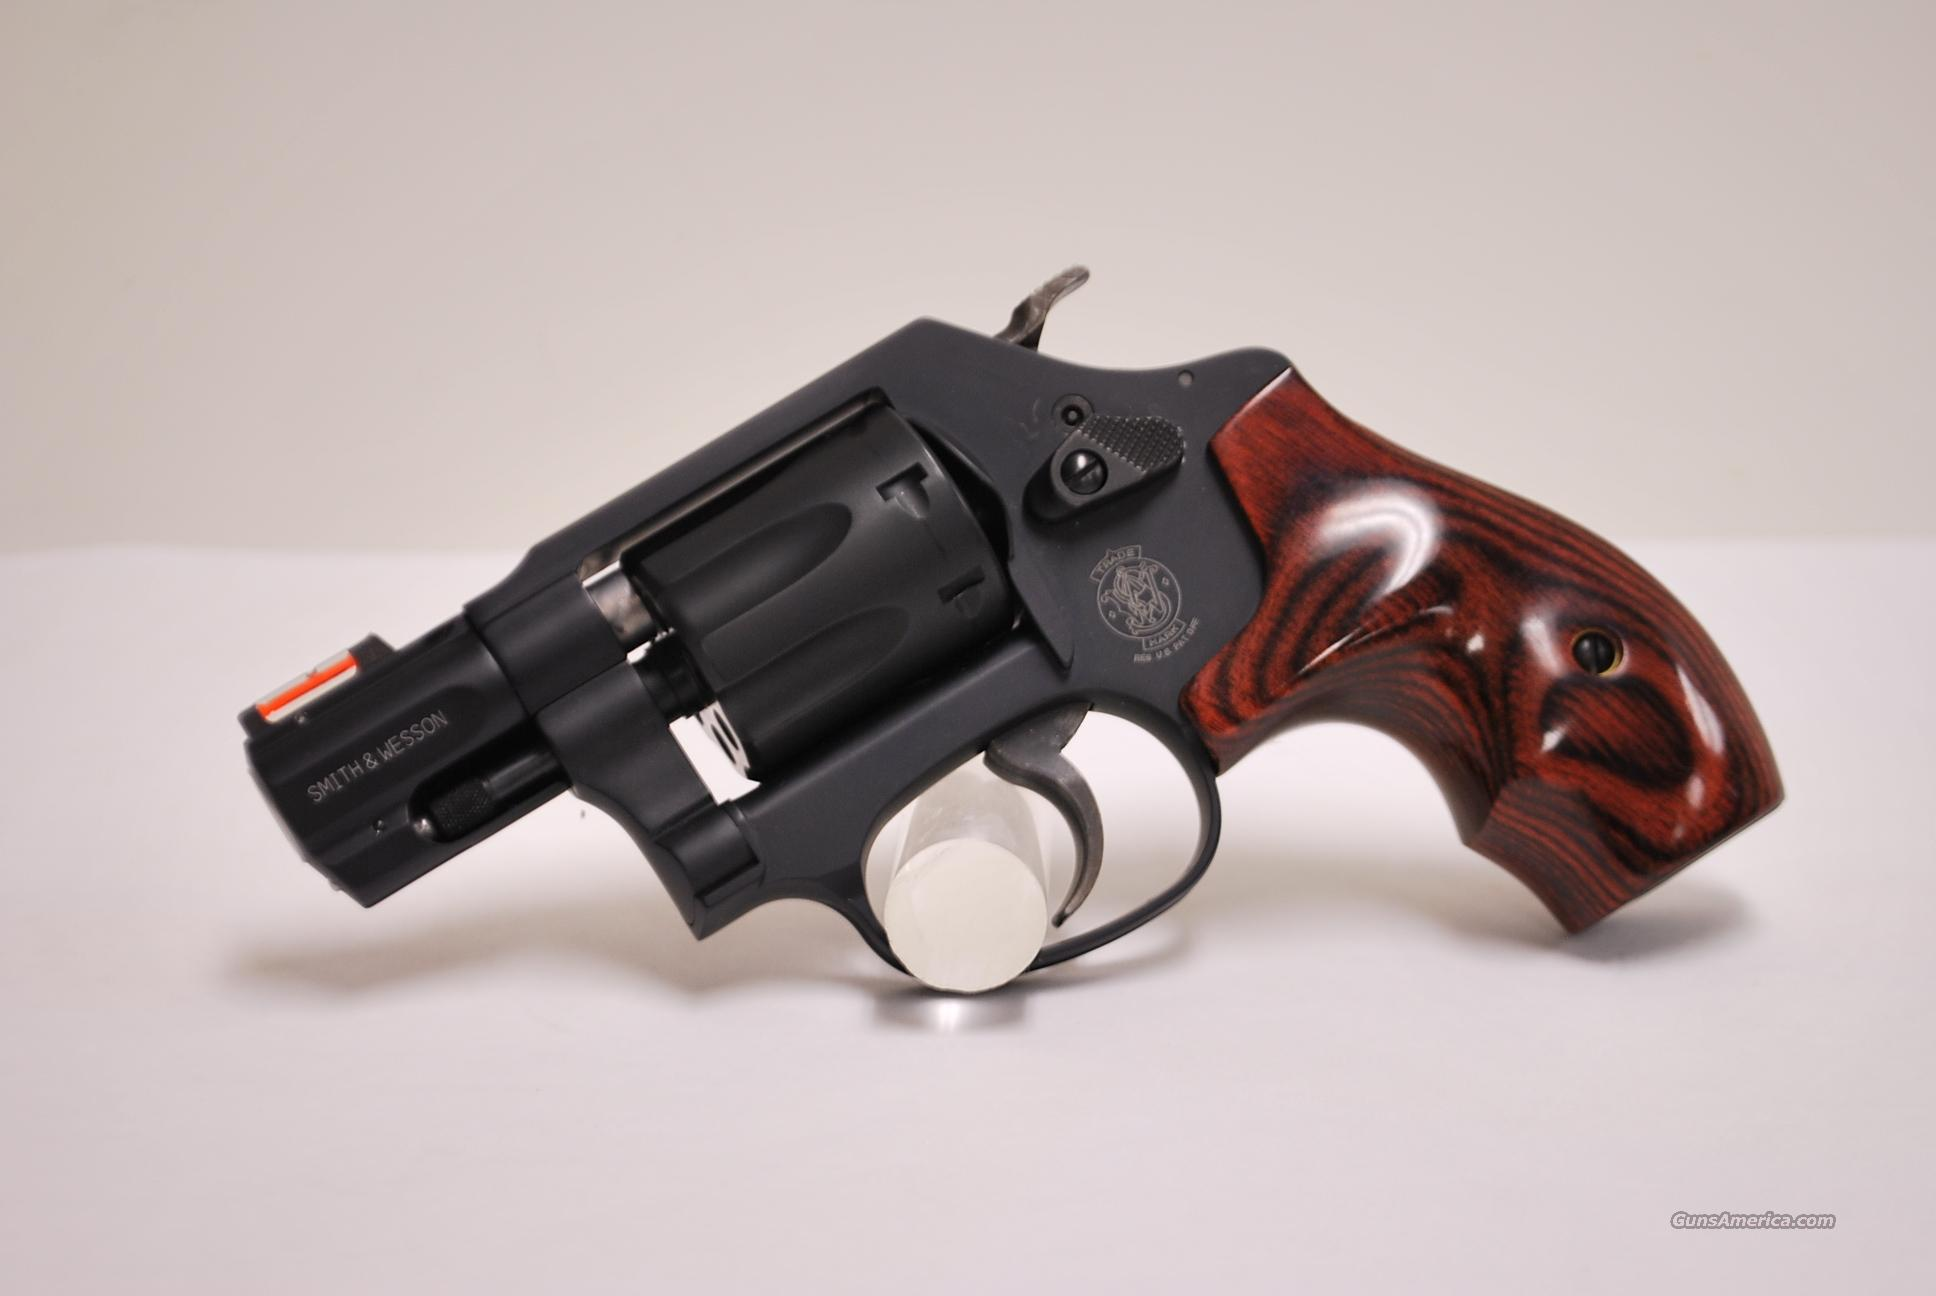 Smith & Wesson 351PD Airlite, .22 Magnum  Guns > Pistols > Smith & Wesson Revolvers > Full Frame Revolver